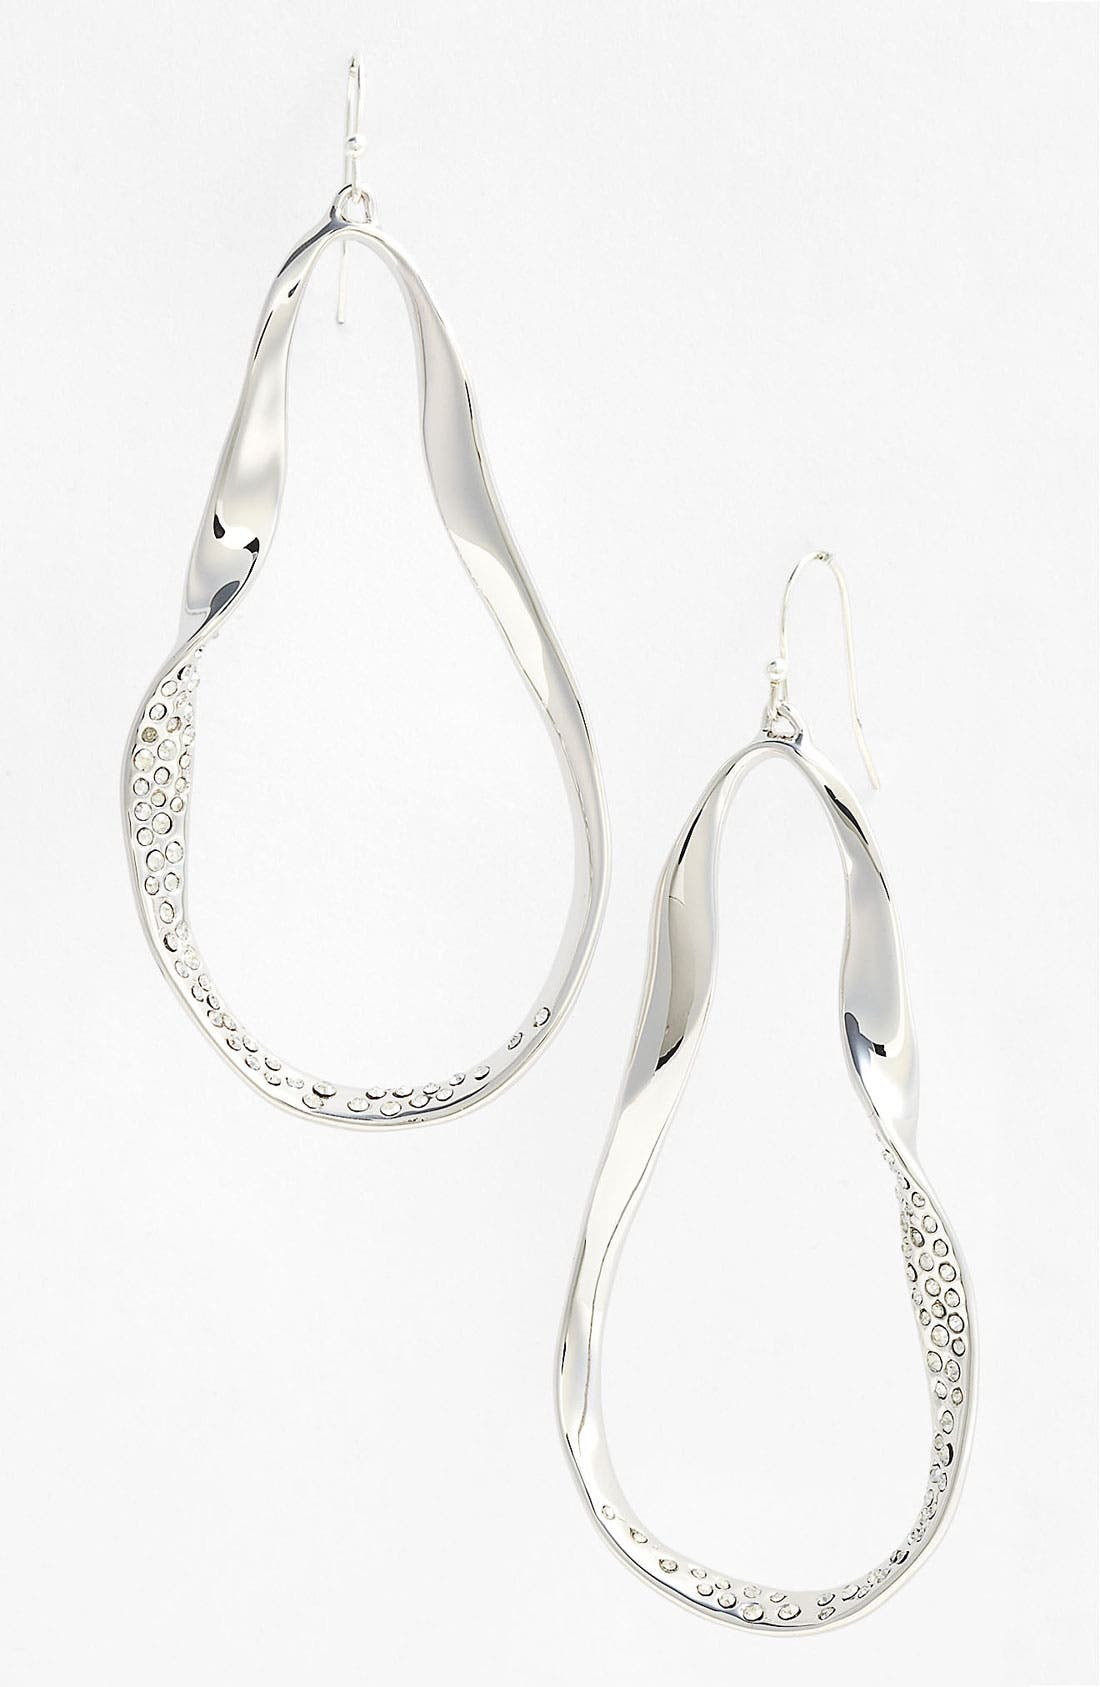 Main Image - Alexis Bittar 'Miss Havisham - Bel Air' Twisted Teardrop Earrings